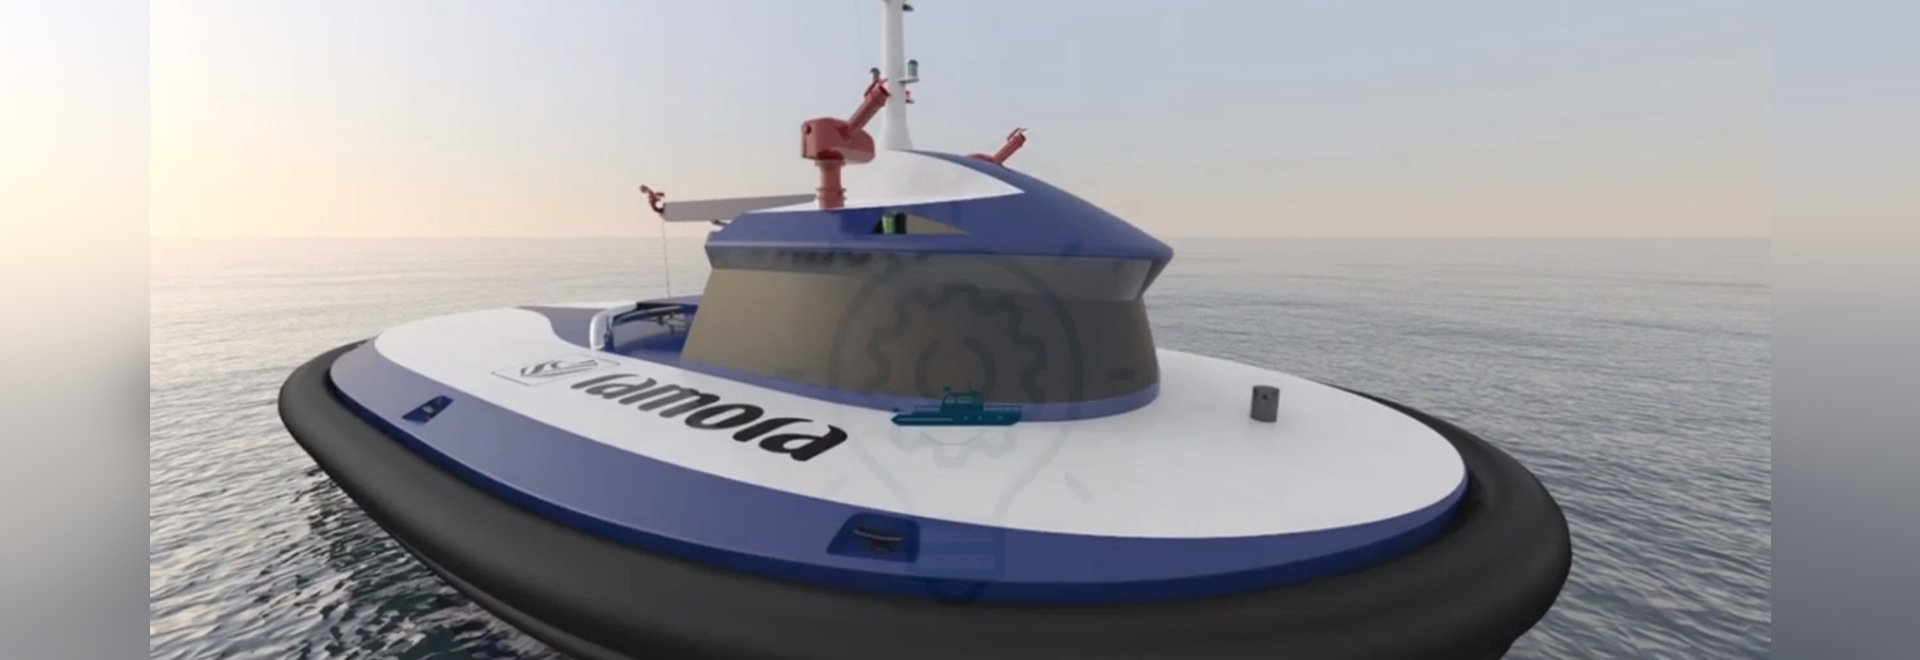 World's first unmanned autonomous commercial tugboats